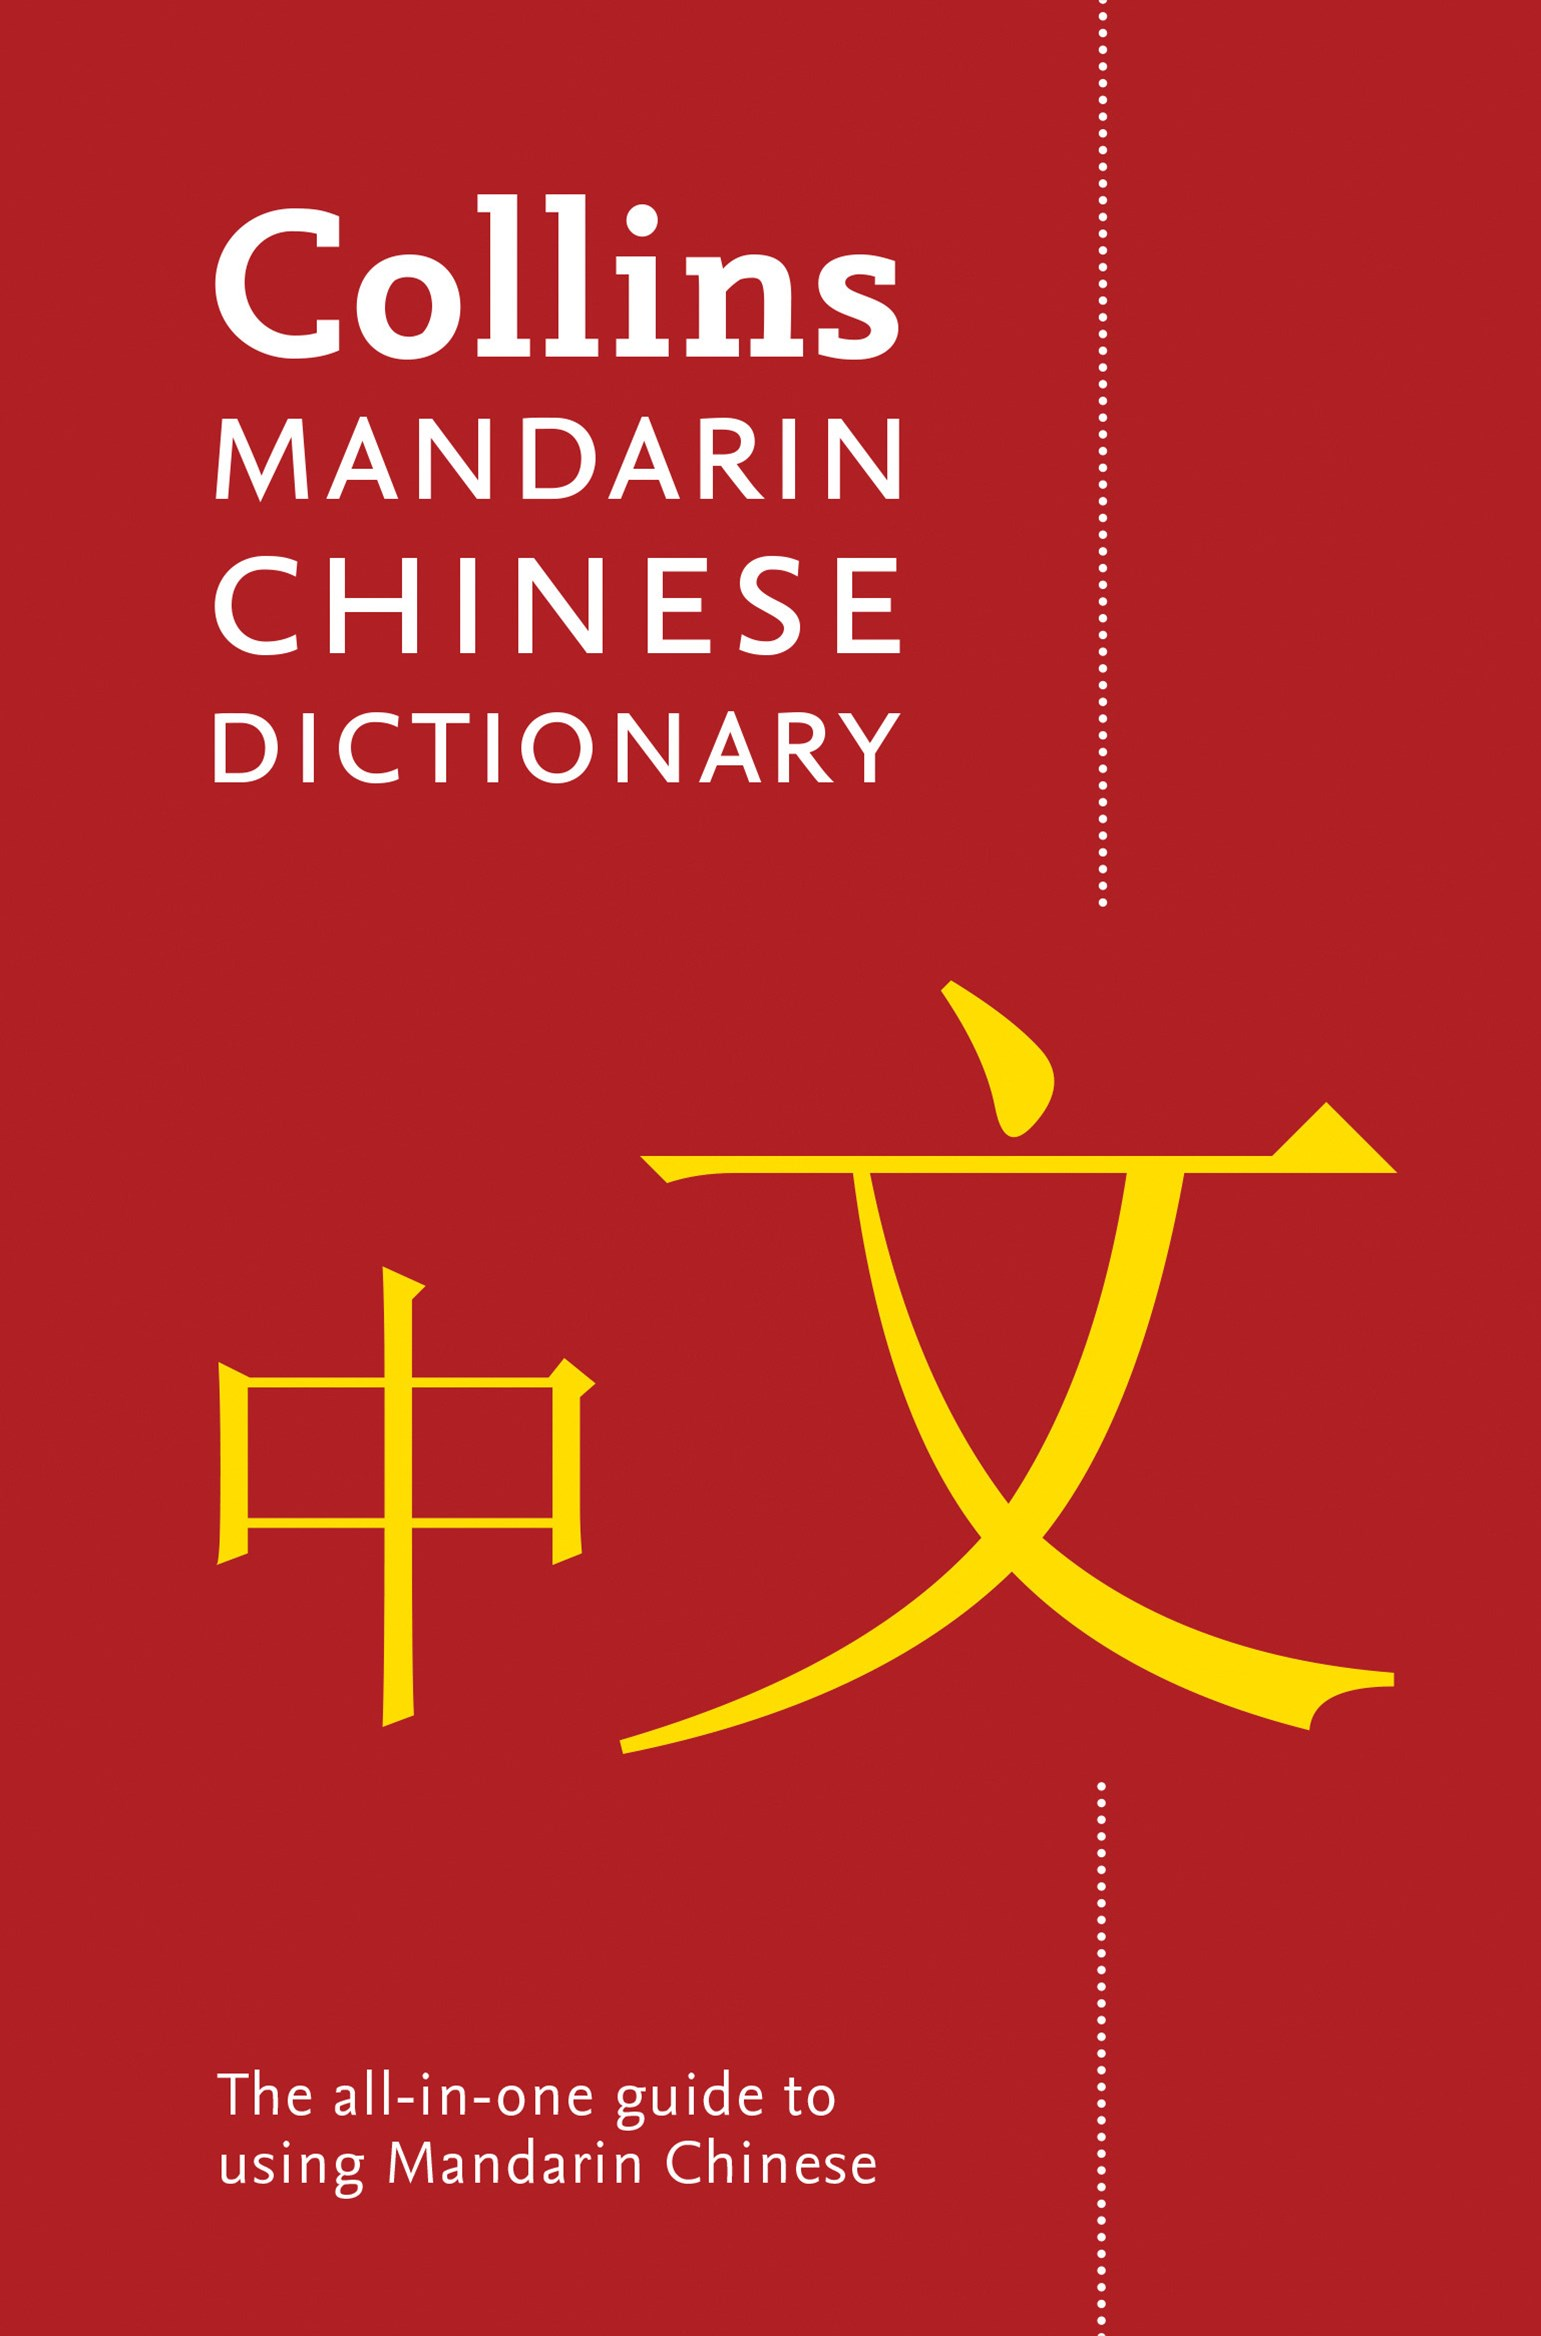 Collins Mandarin Chinese Dictionary [4th Edition]